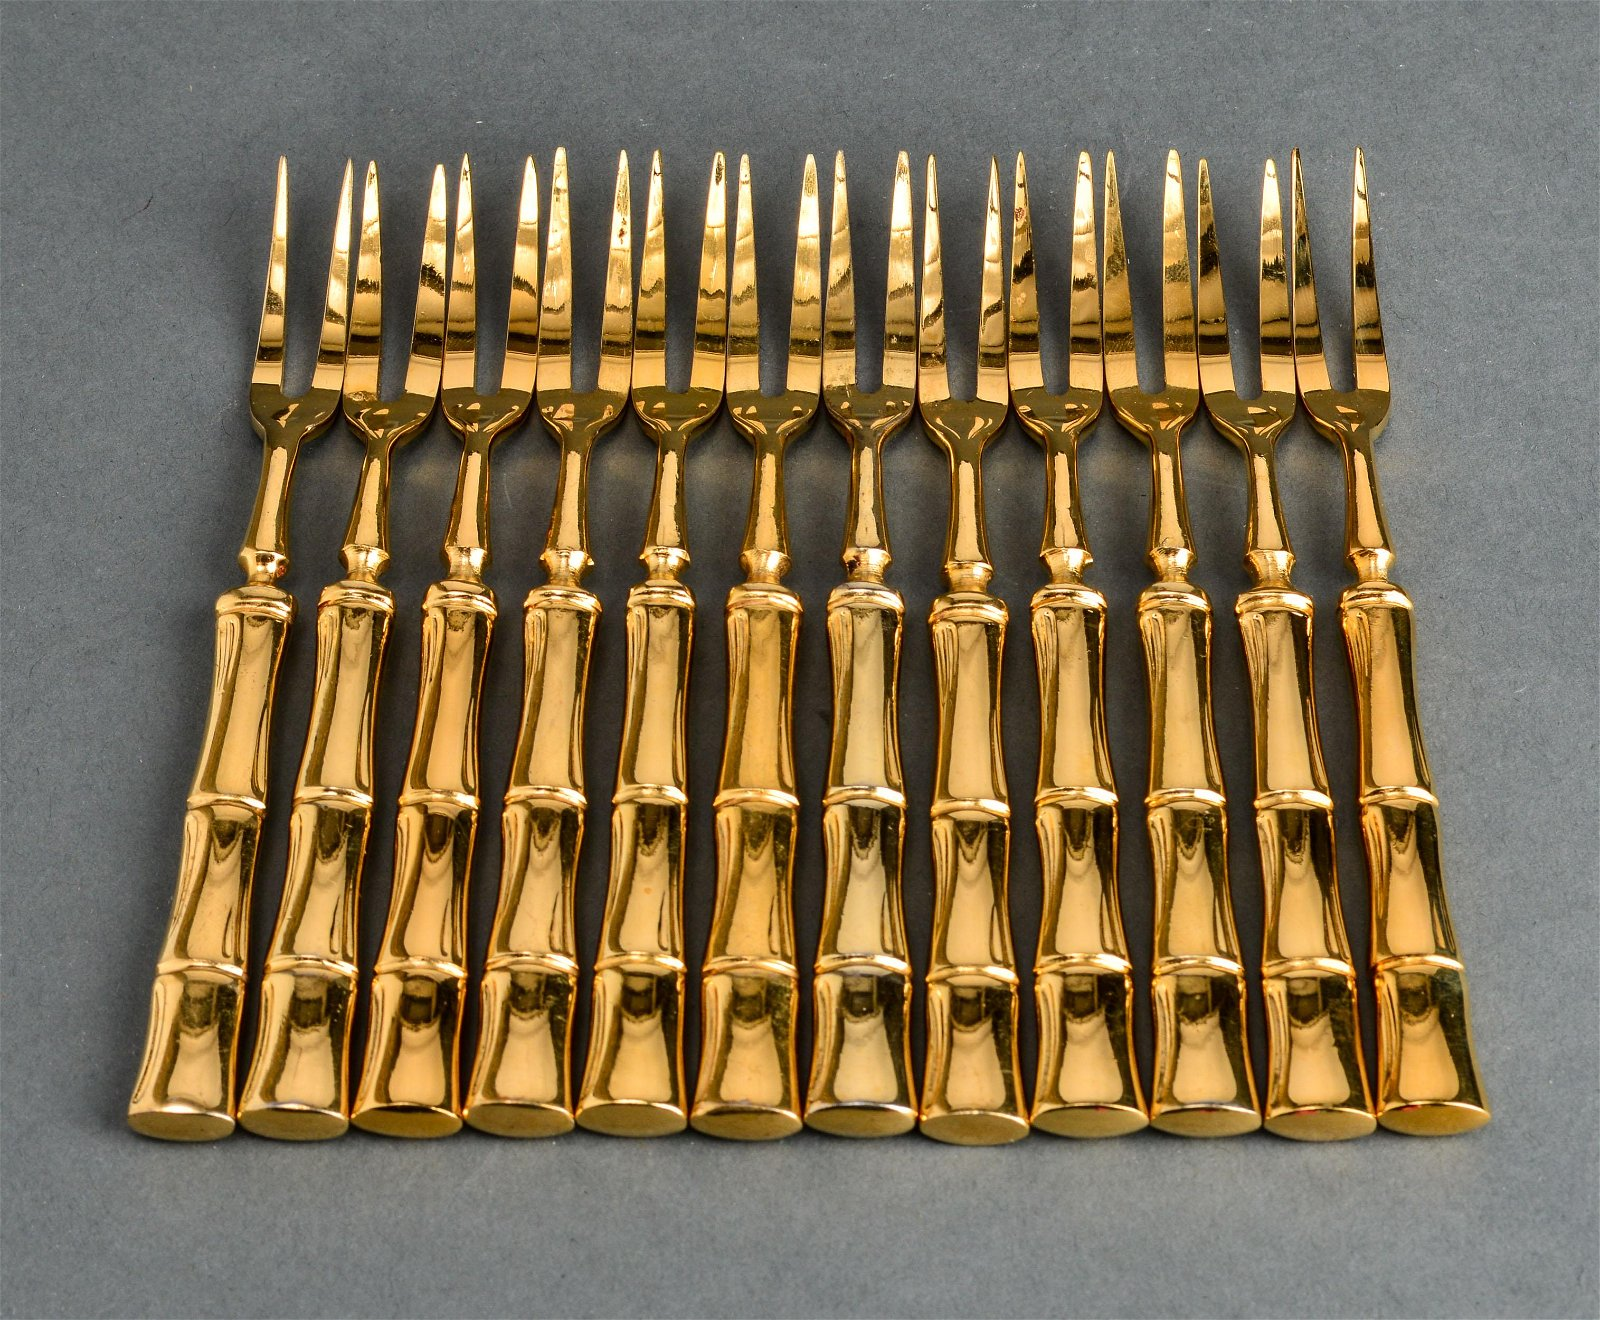 Gold-Tone Bamboo Motif Hors D'oeuvre Forks Set 12